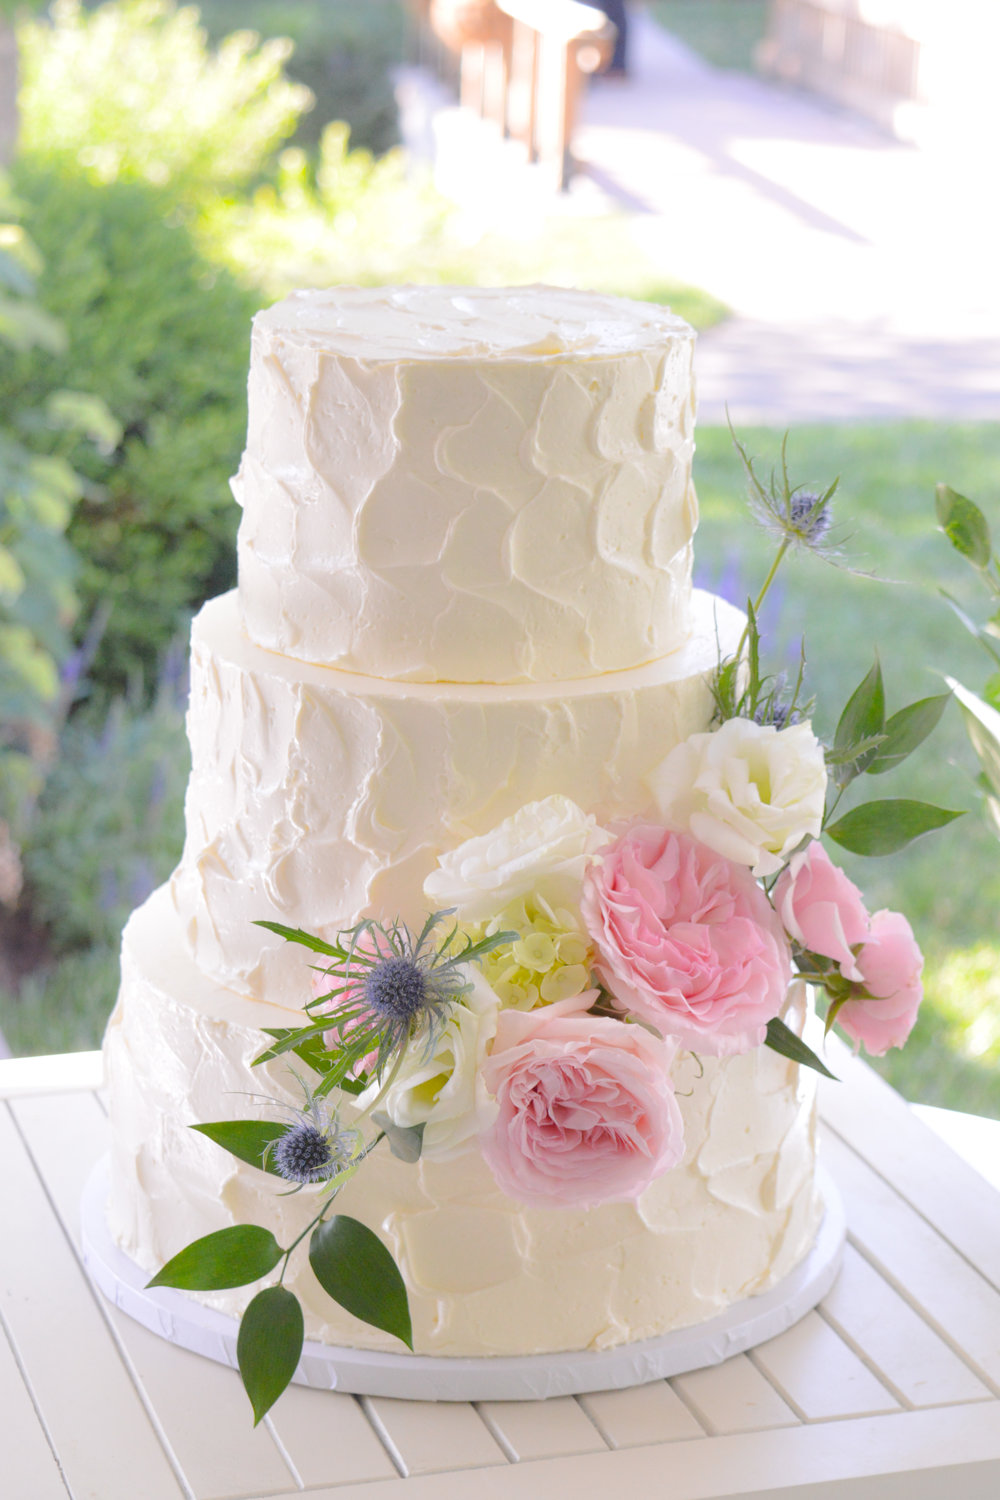 Pink and White Flower Wedding Cake.jpg